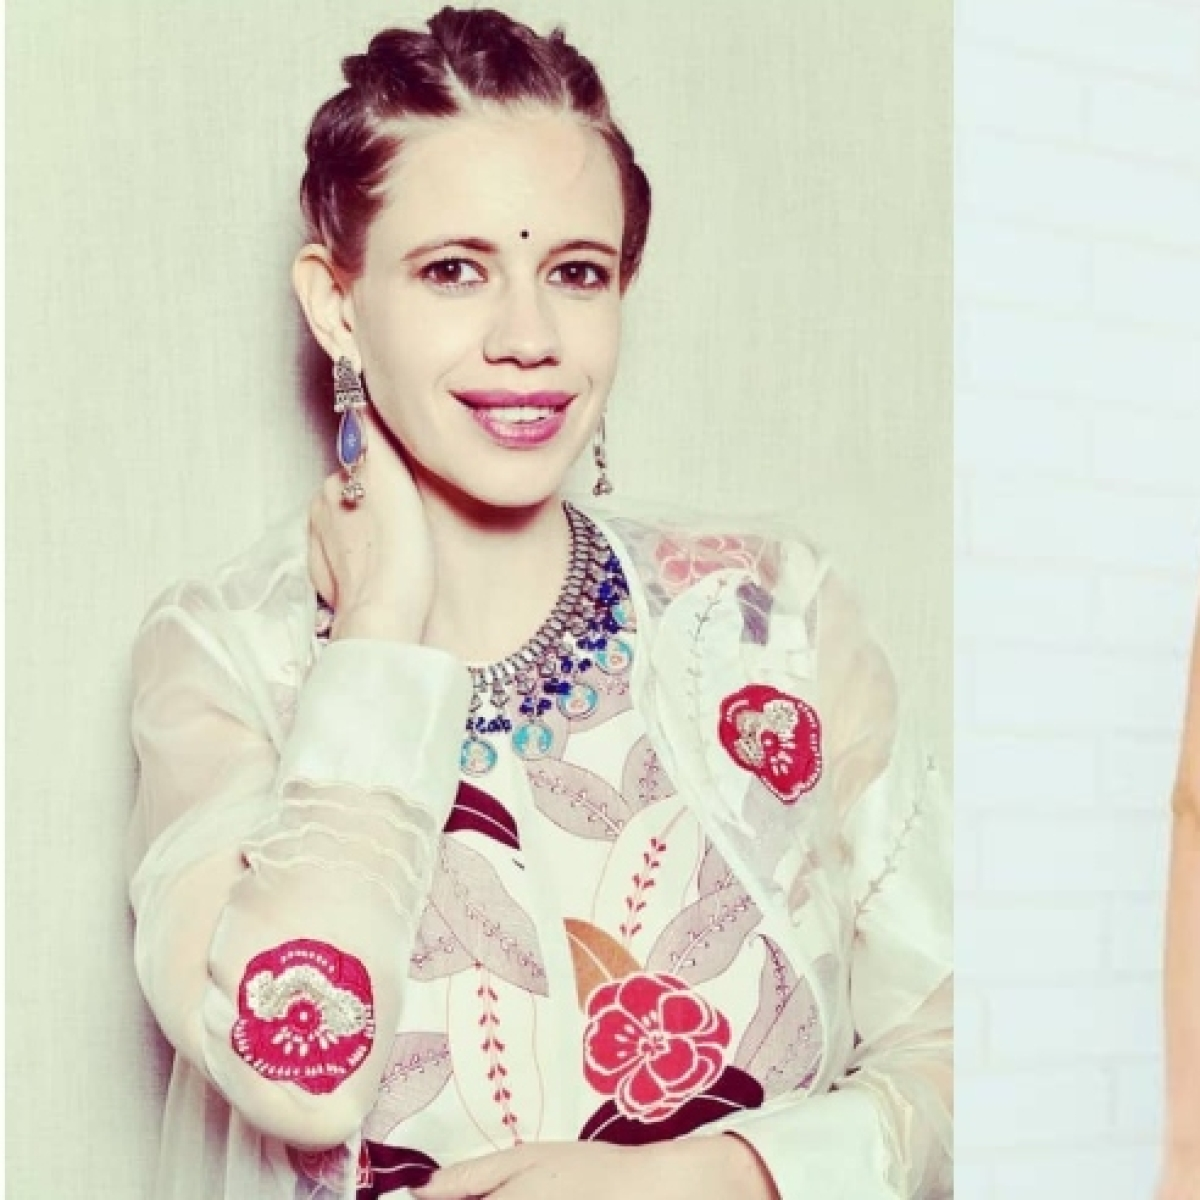 Don't want to rush into marriage just because I'm pregnant: Kalki Koechlin